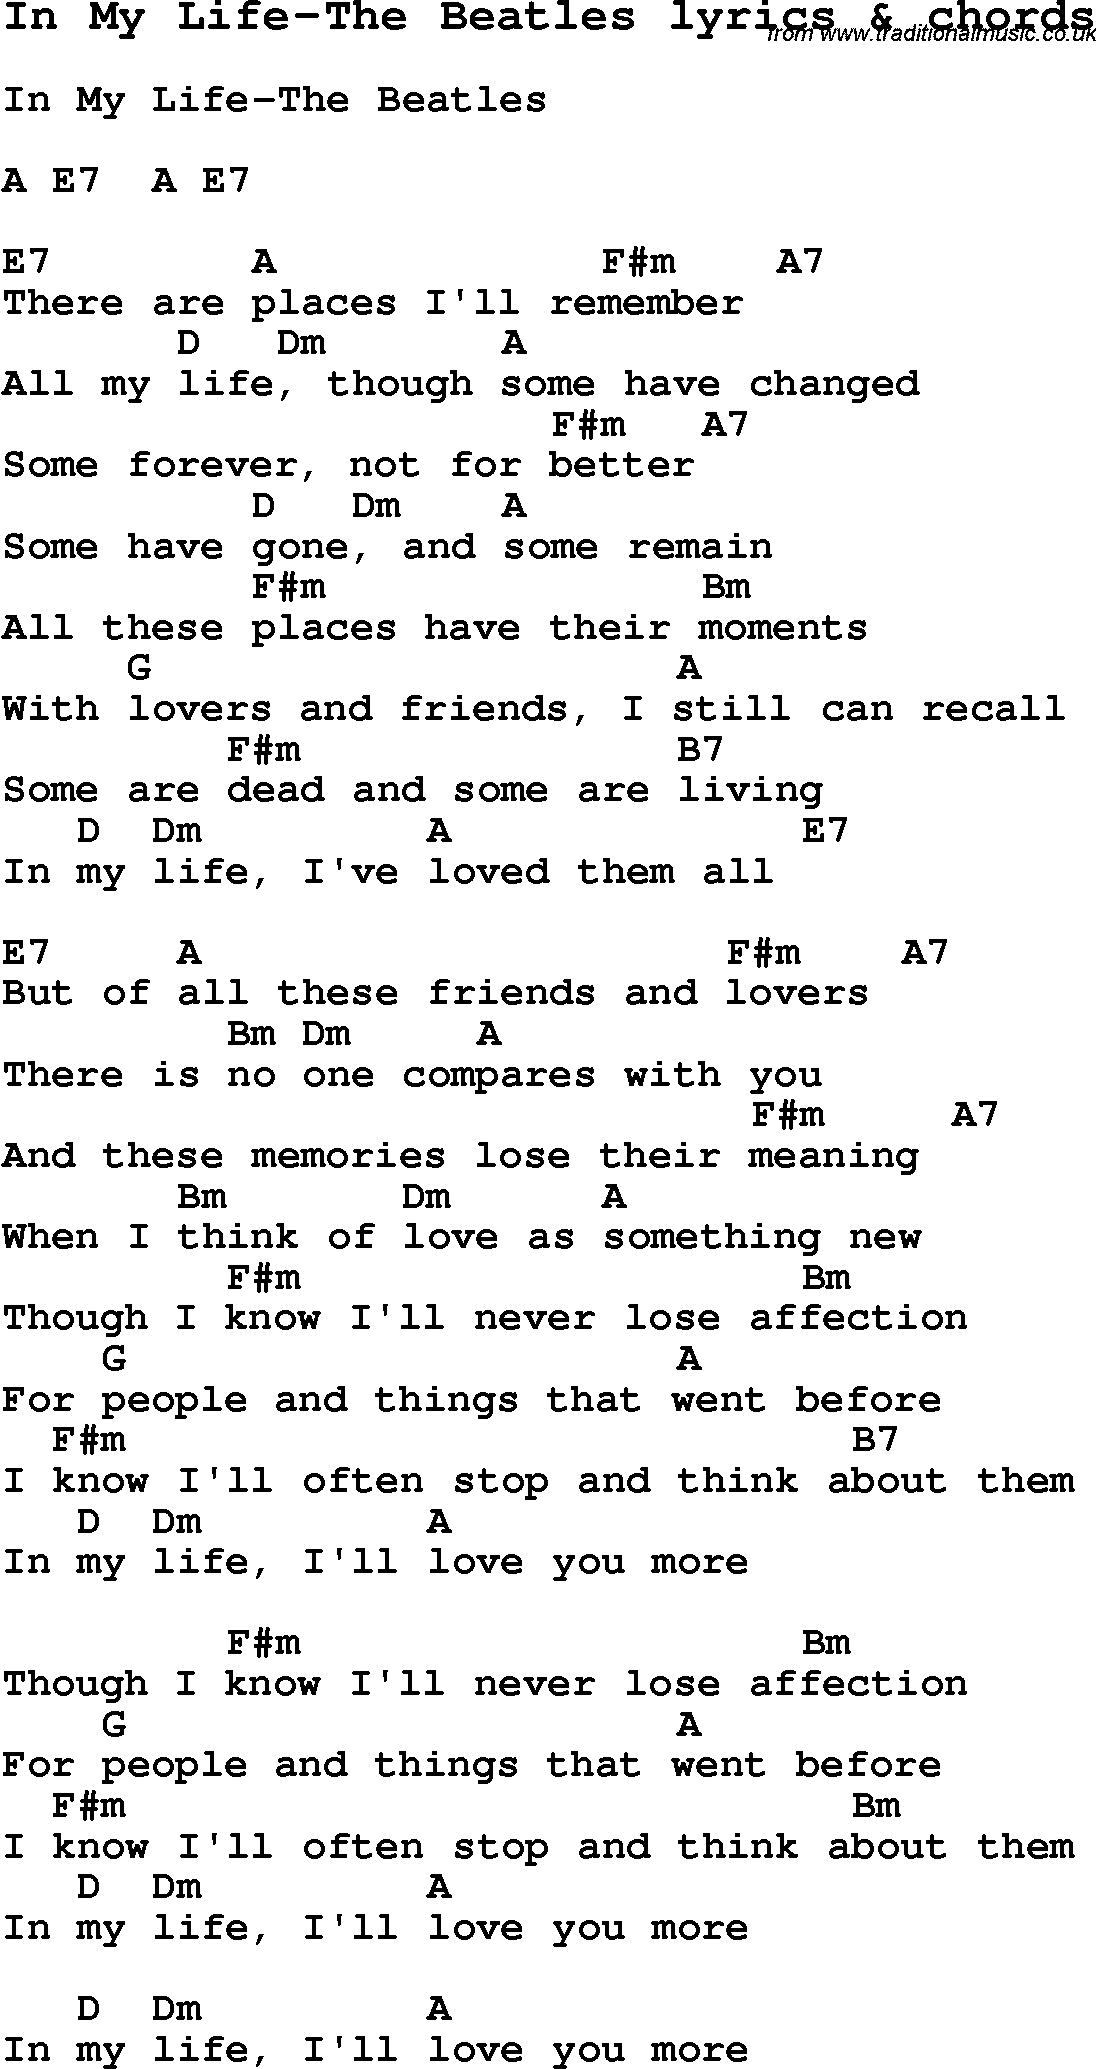 Love song lyrics forin my life the beatles with chords love song lyrics for in my life the beatles with chords for ukulele hexwebz Images